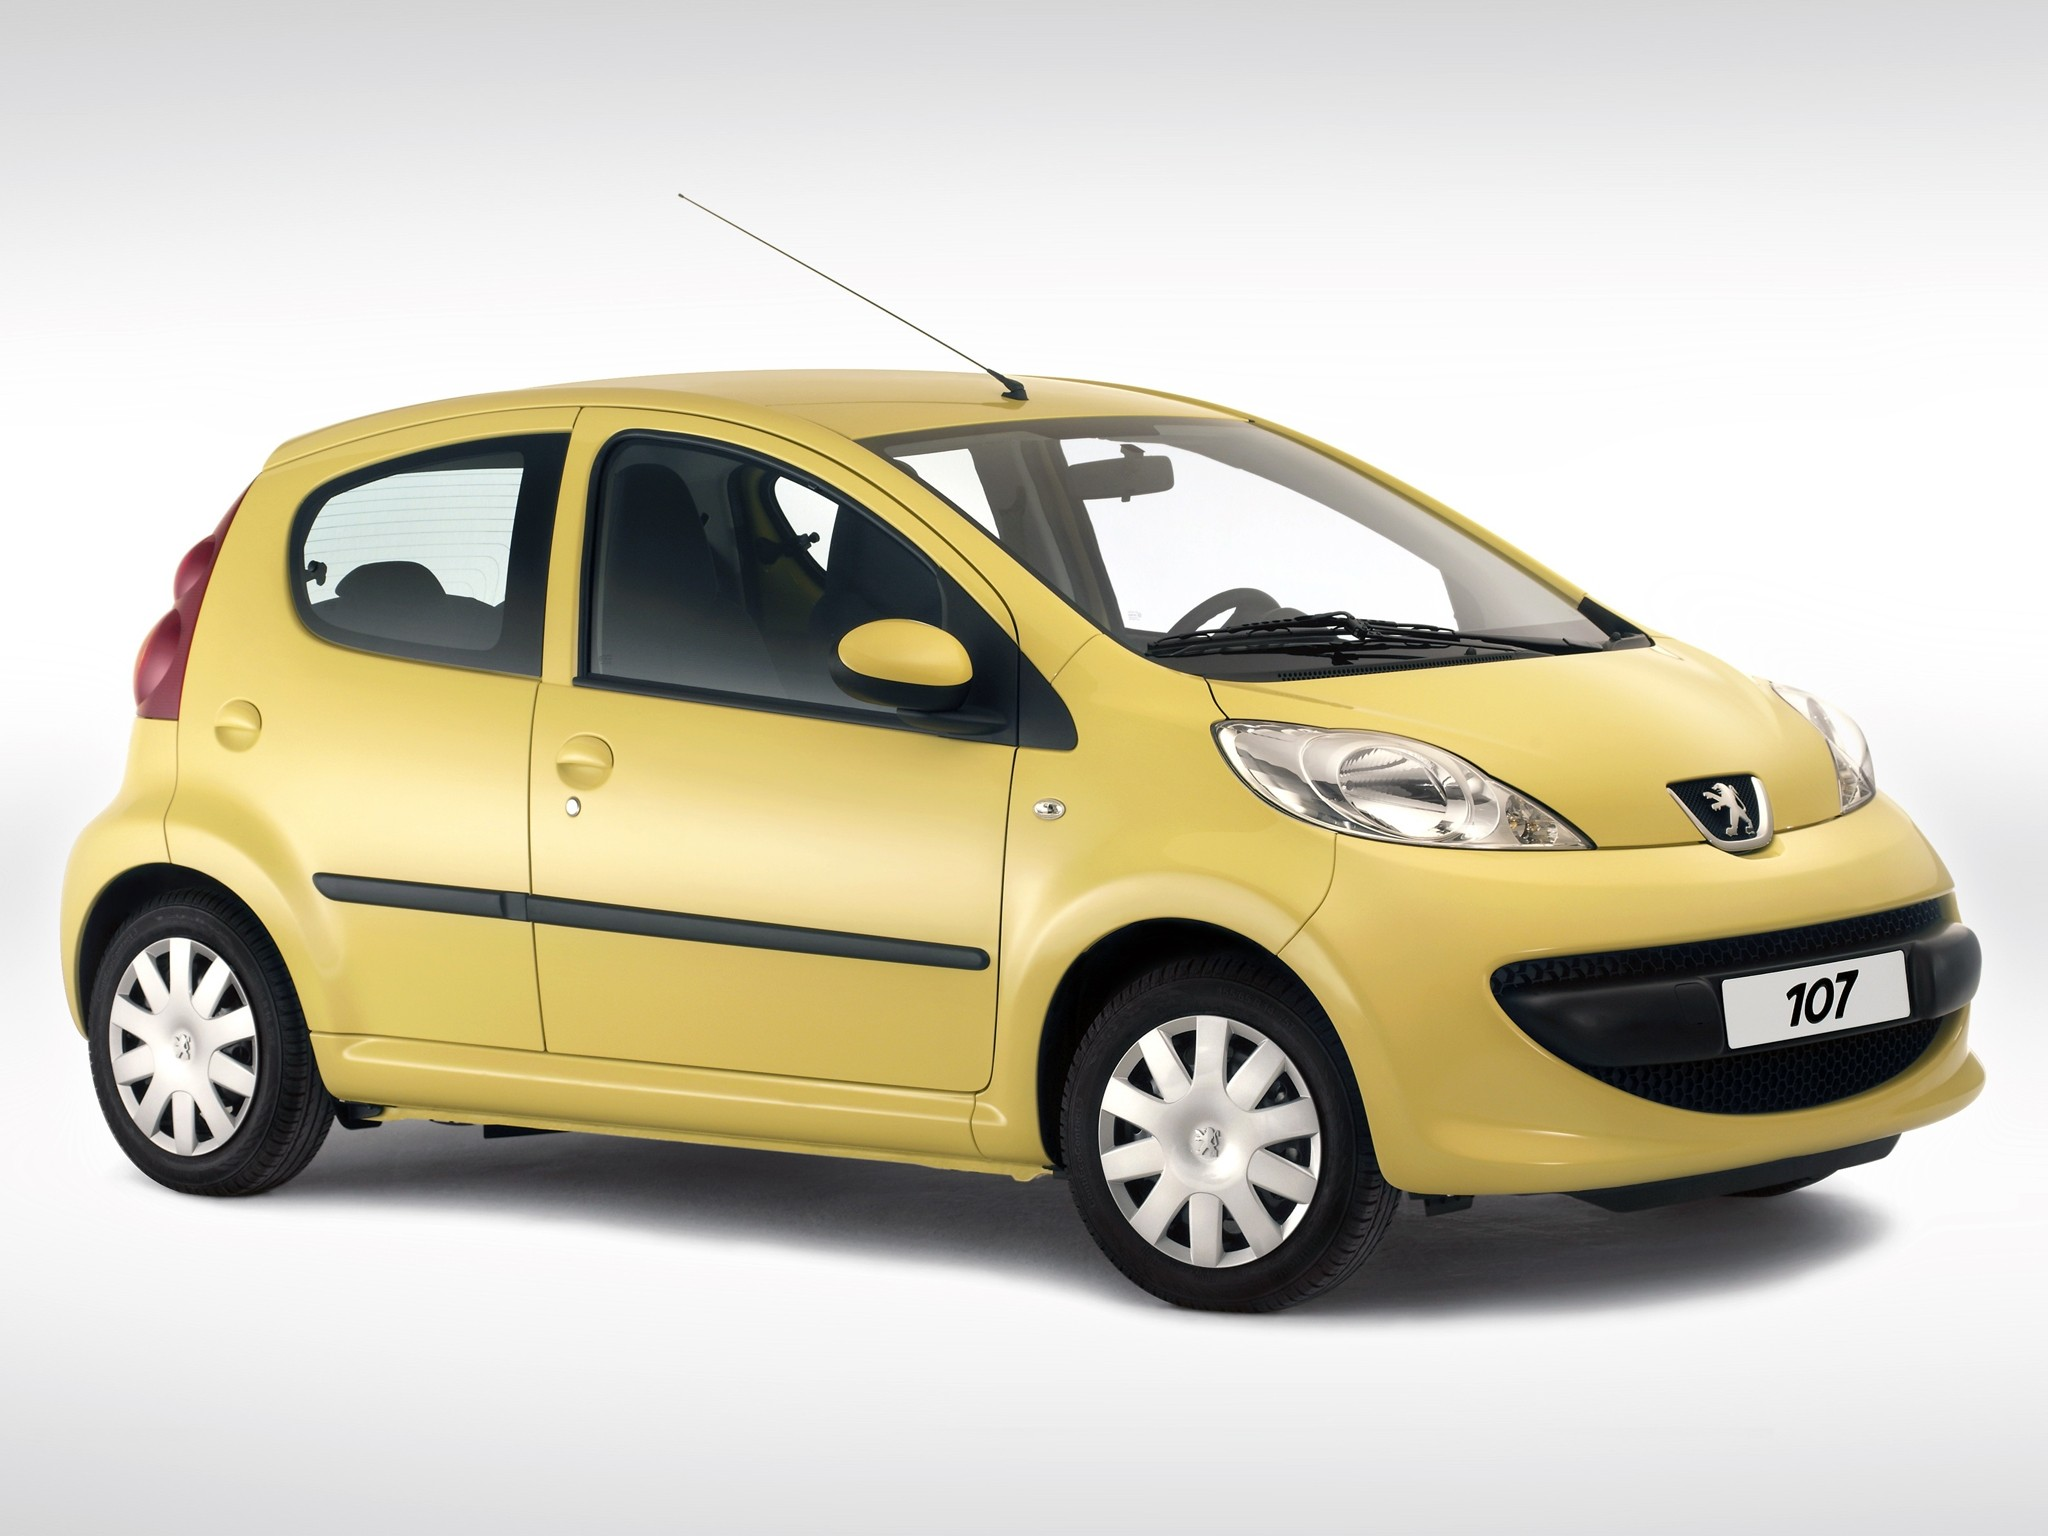 PEUGEOT 107 5 Doors Specs & Photos